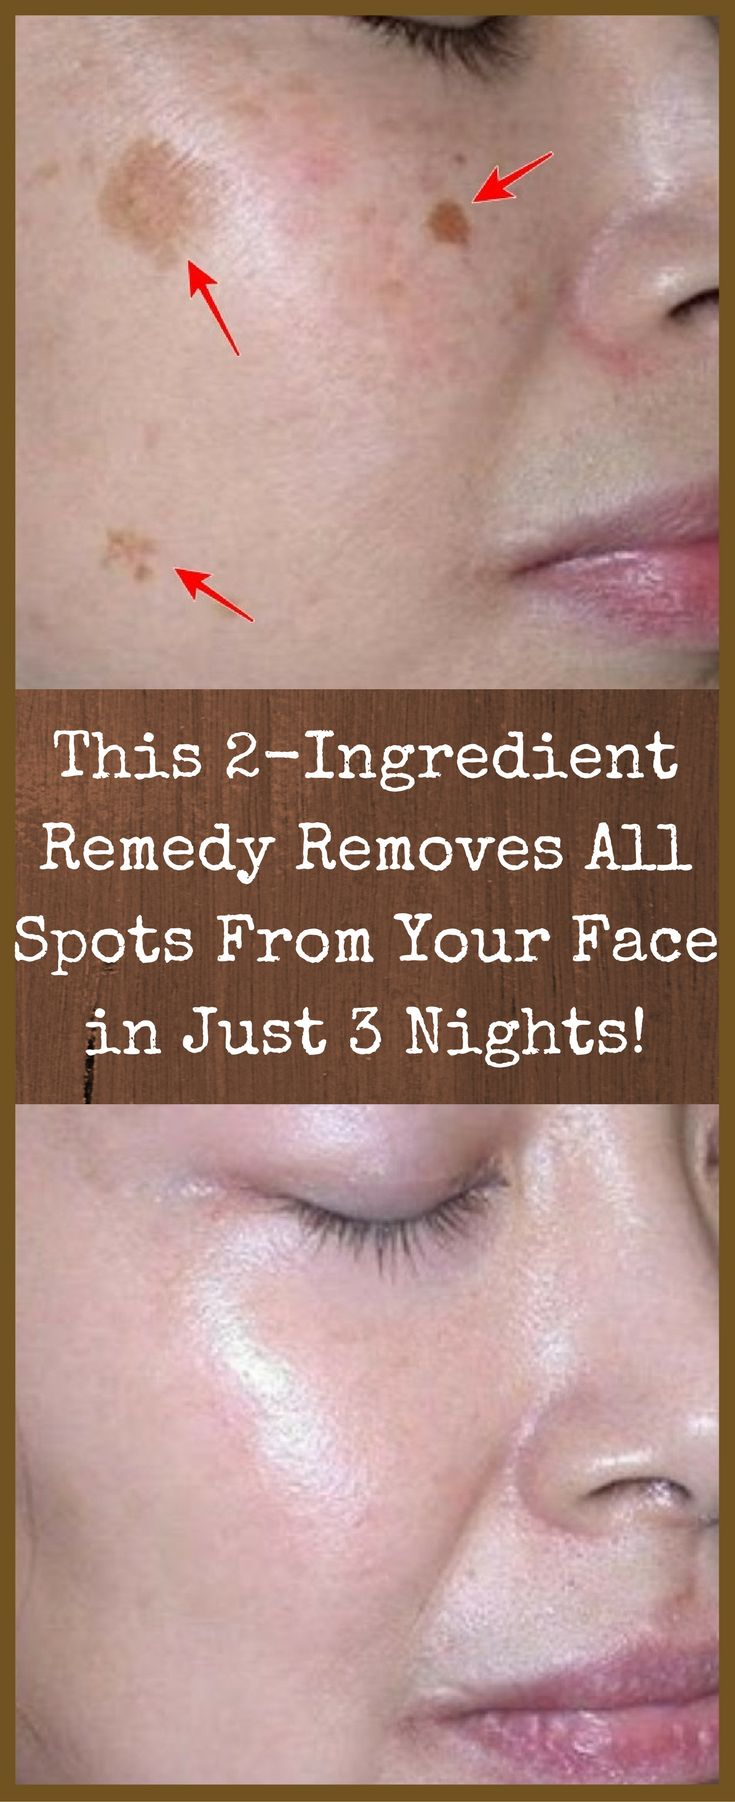 AMAZING: This 2-Ingredient Remedy Removes All Spots From Your Face in Just 3 Nights...!